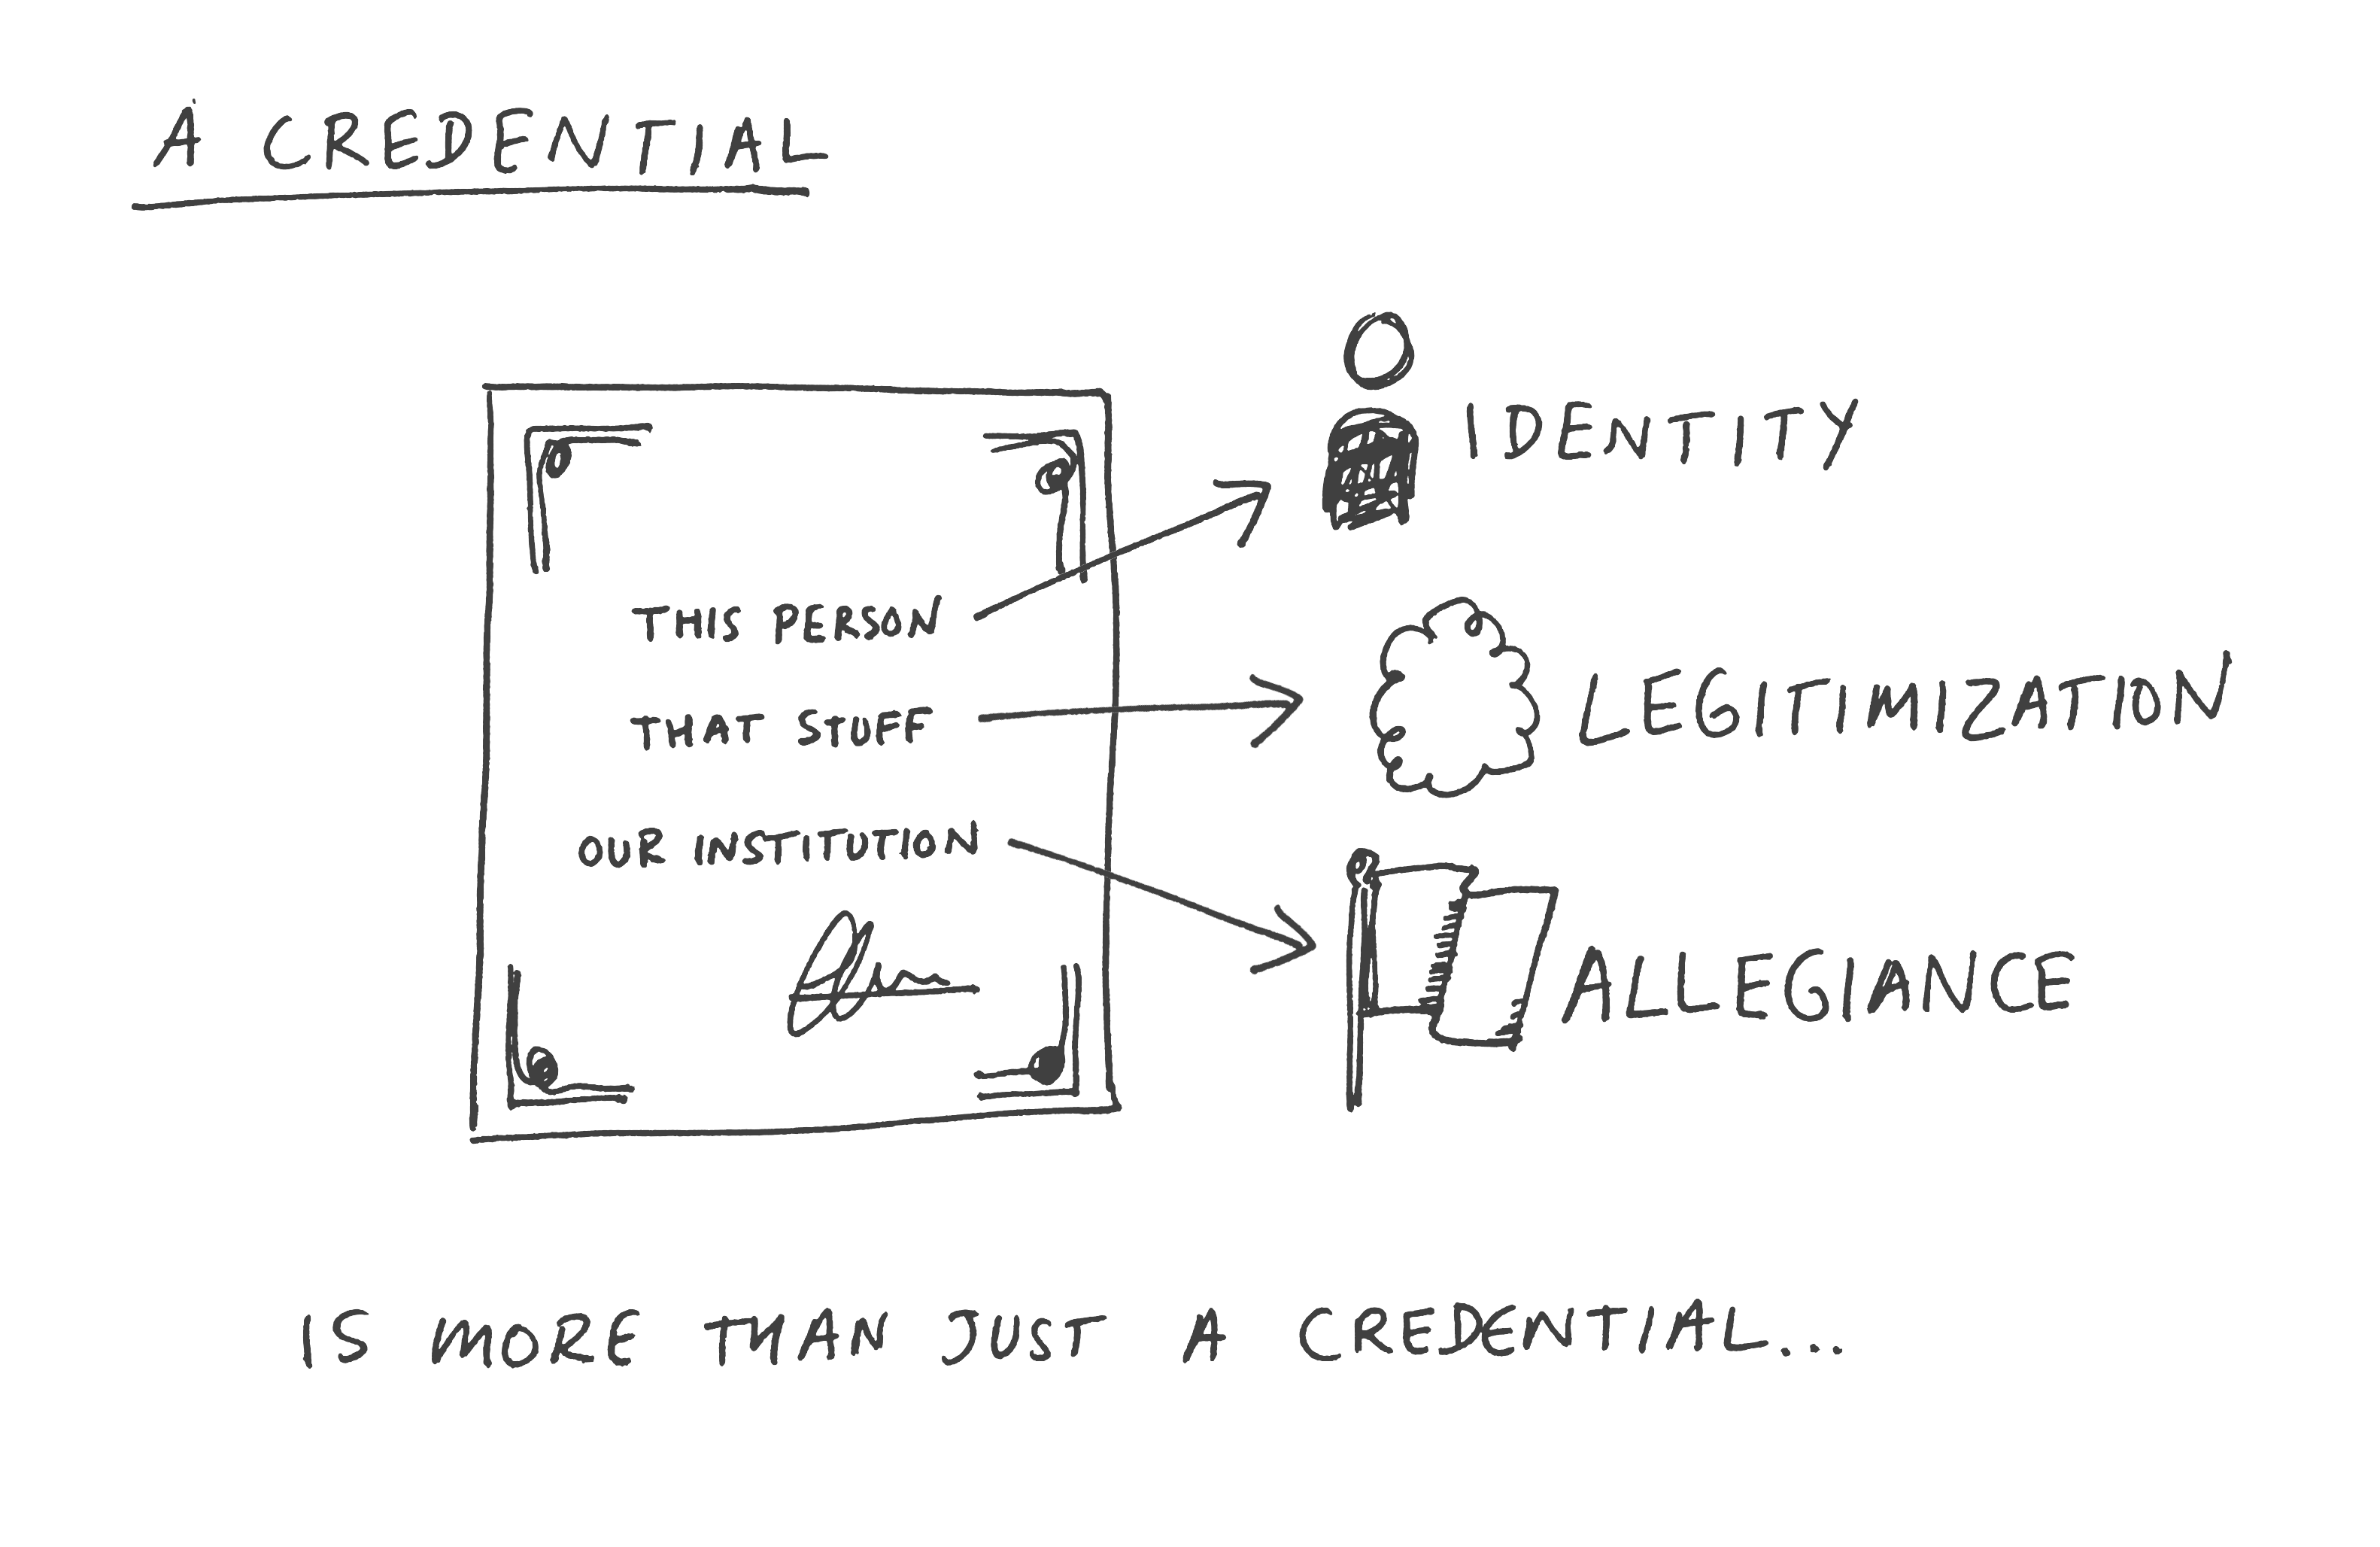 A credential is more than just a credential